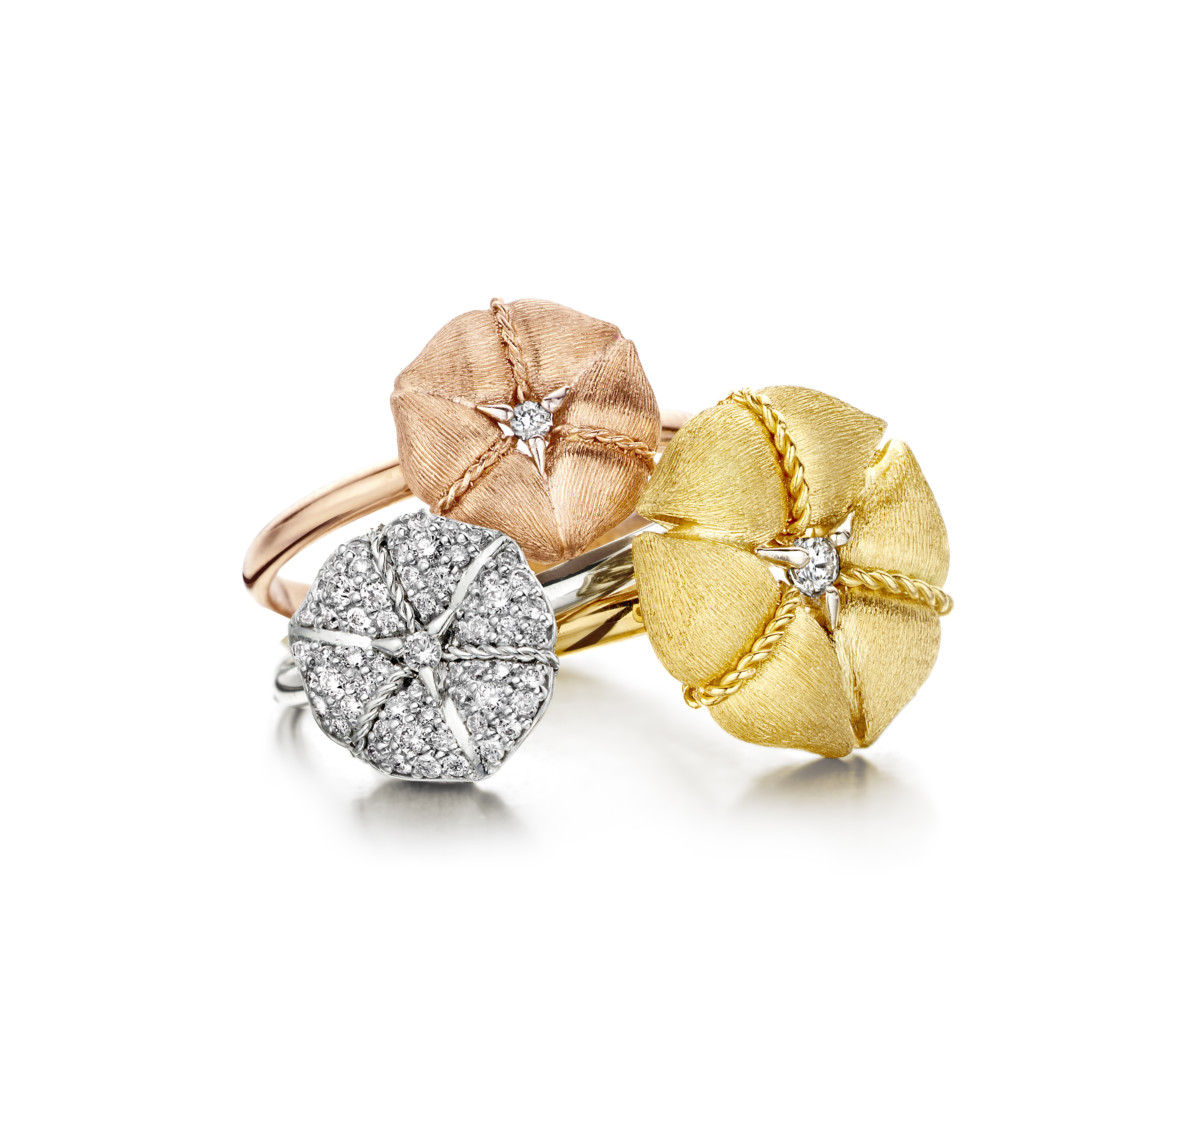 Nanis_AS1_AS3_AS15-571_Amarcord_rings_18ktgold_diamonds